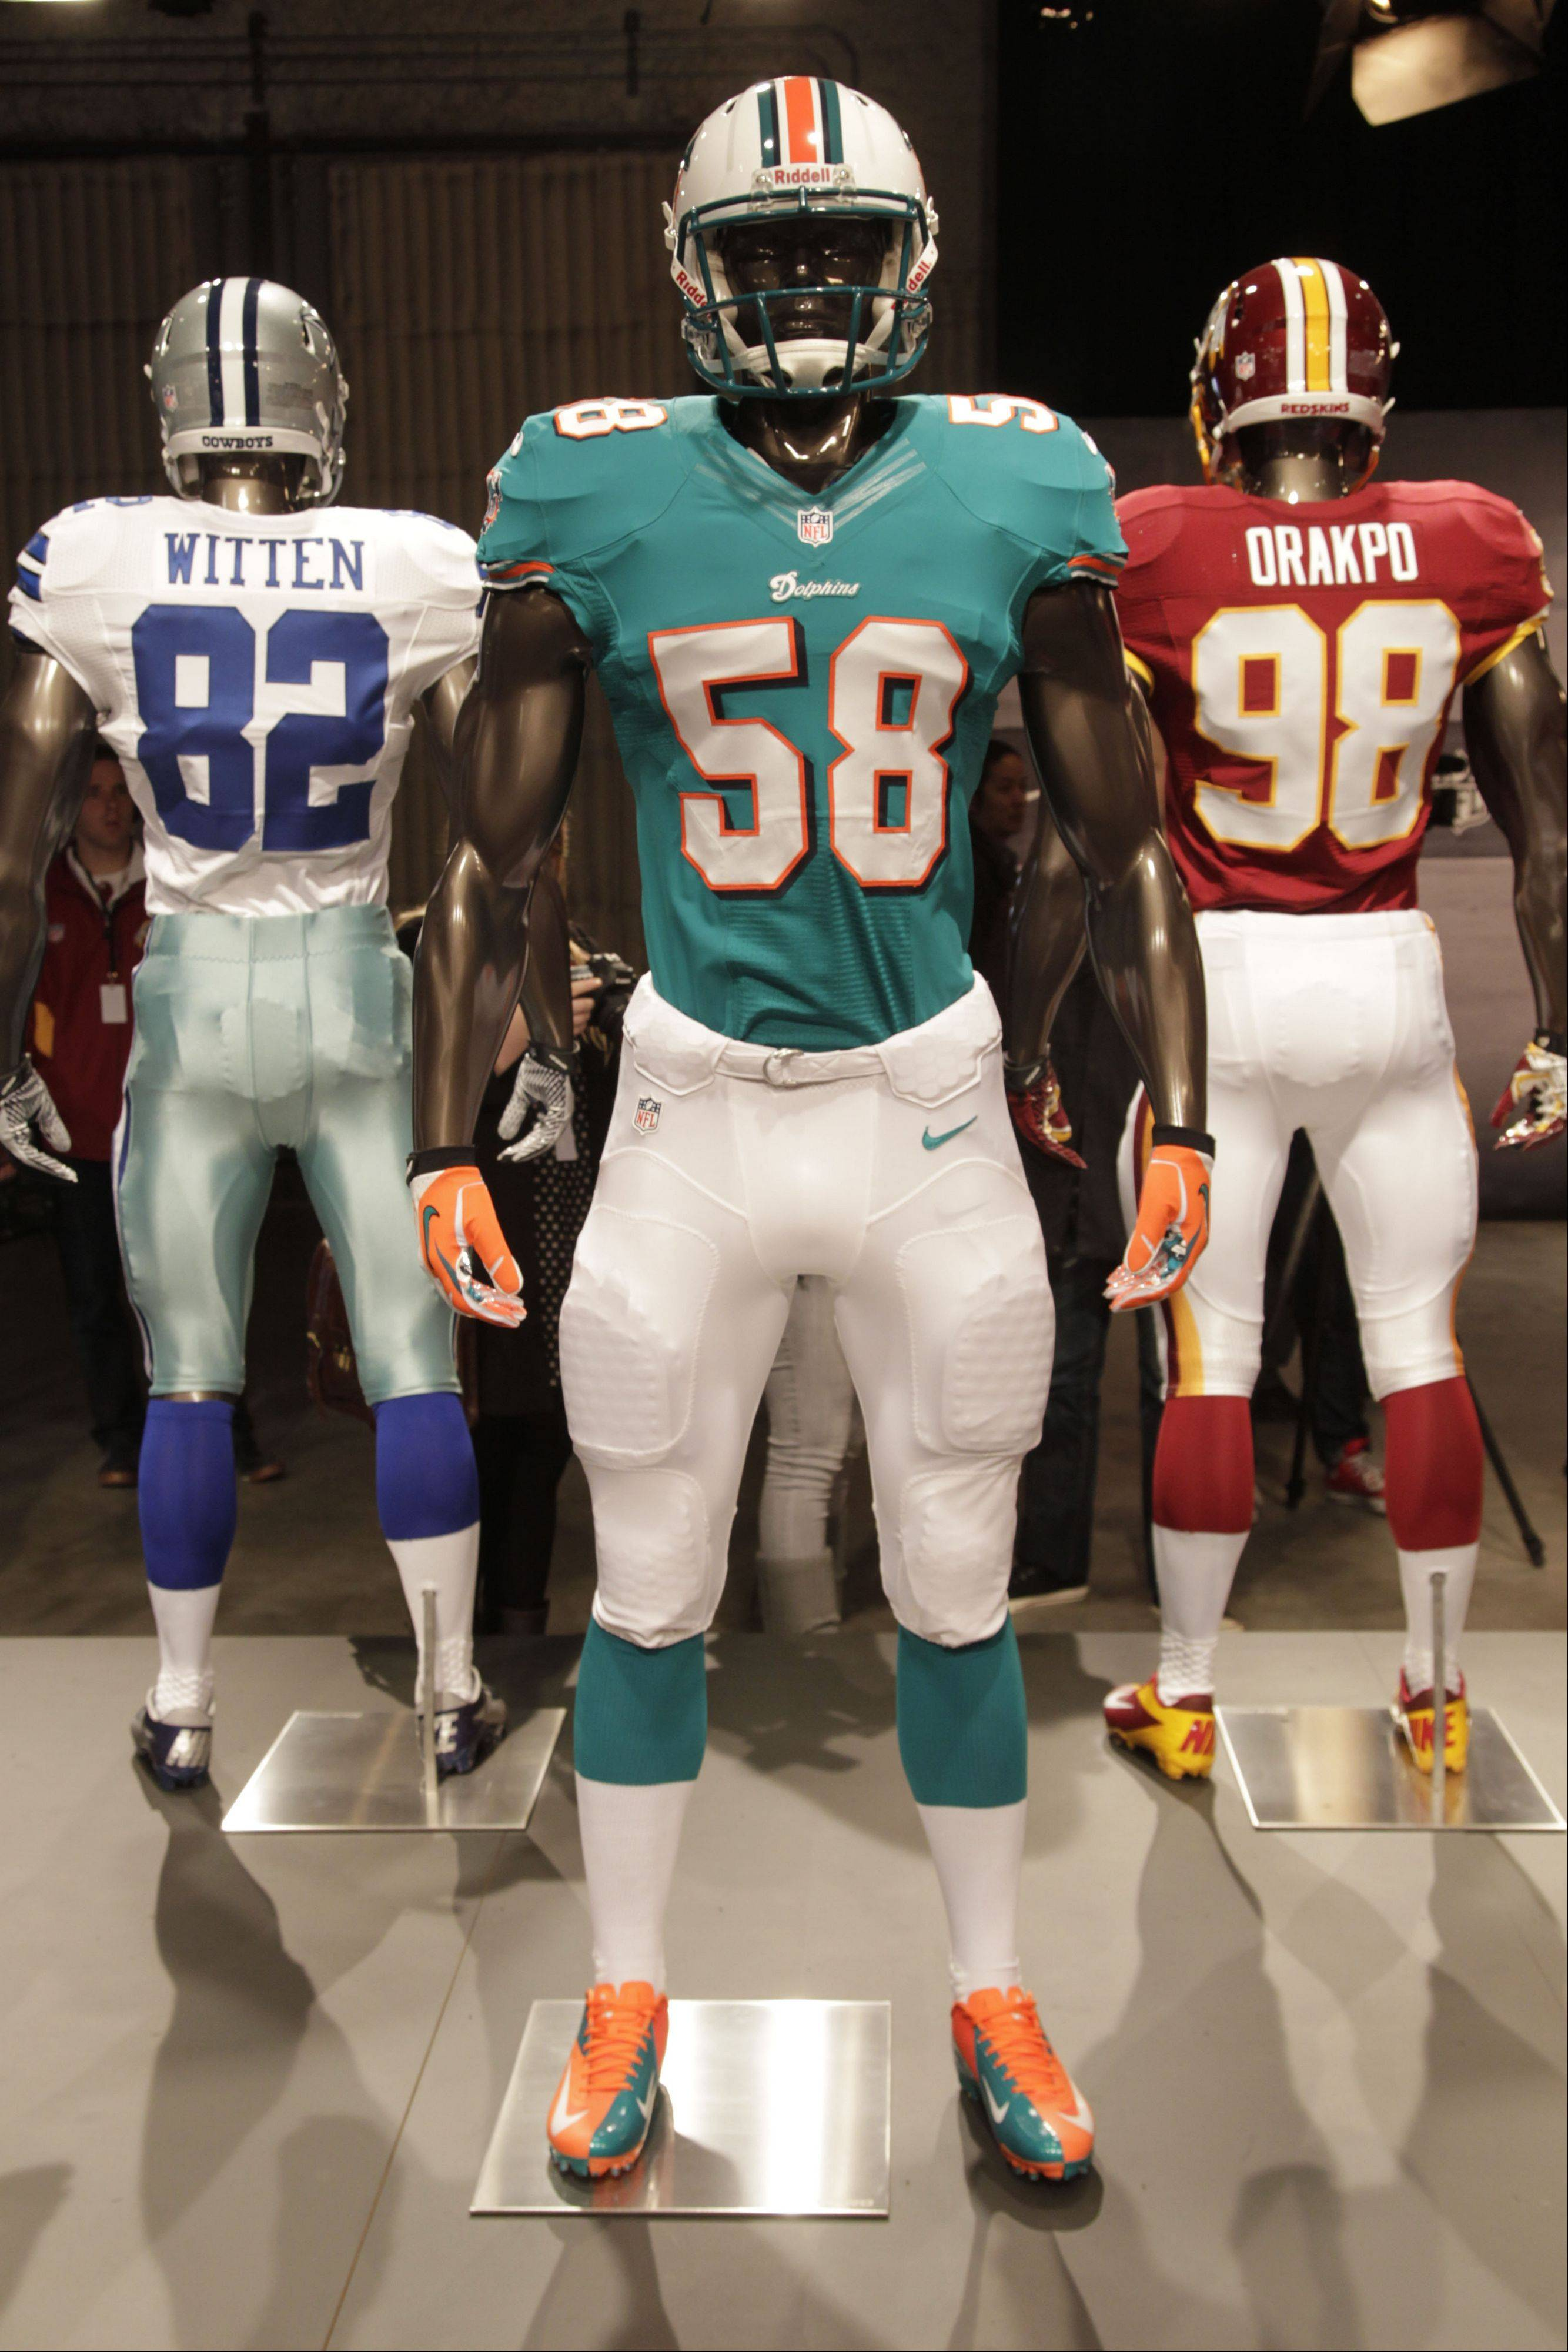 The new Miami Dolphins uniform is displayed on a mannequin in New York, Tuesday, April 3, 2012. NFL has unveiled its new sleek uniforms designed by Nike. While most of the new uniforms are not very different visually, they all are made with new technology that make them lighter, dryer and more comfortable.